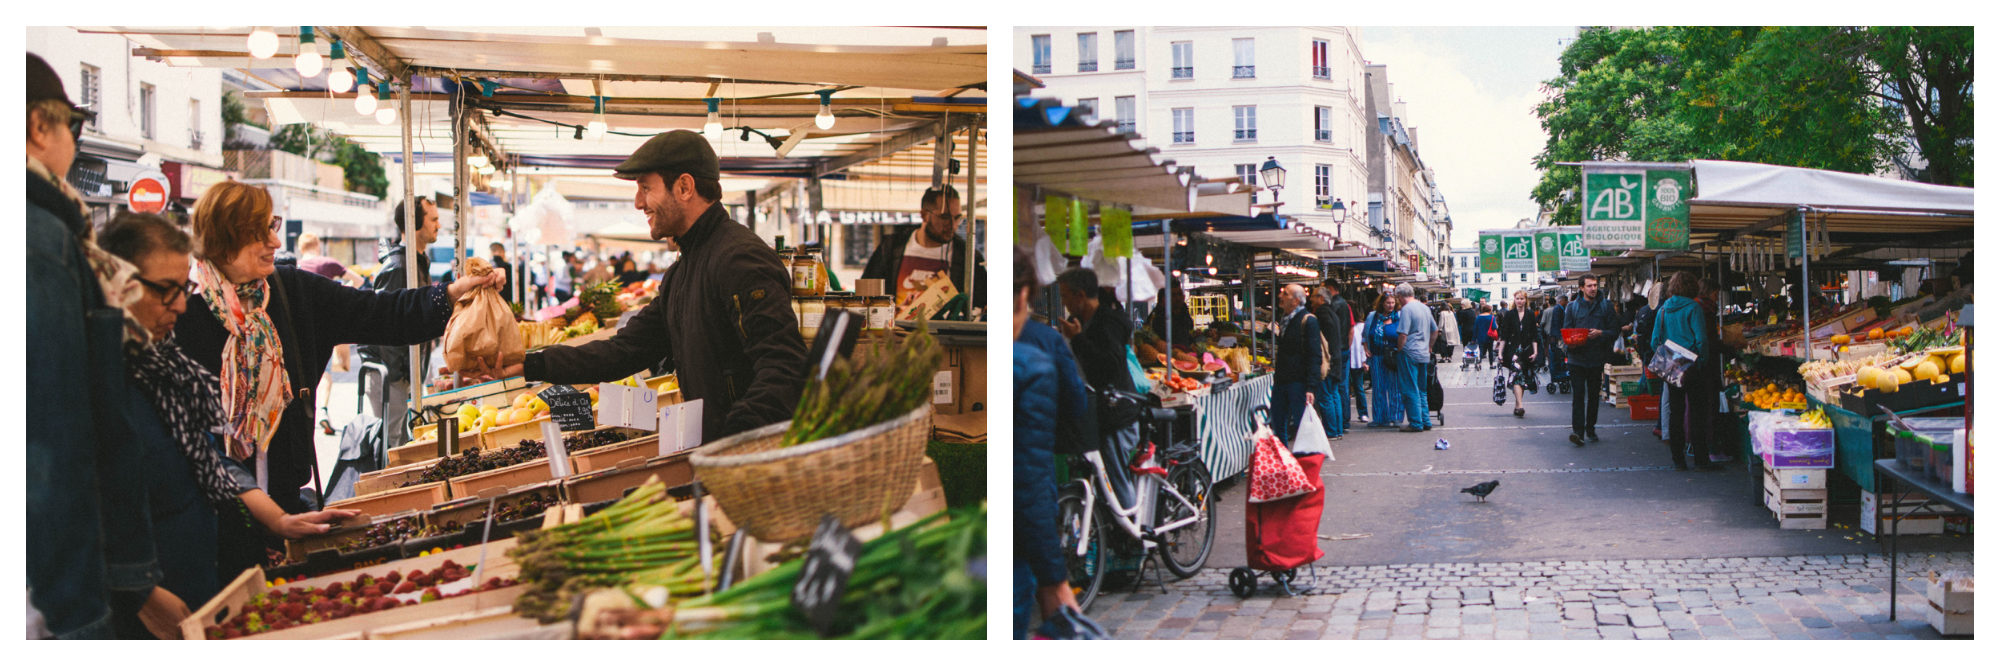 A vegetable stall at the Bastille market in Paris (left). The stalls at the Bastille fruit and vegetable market (right).